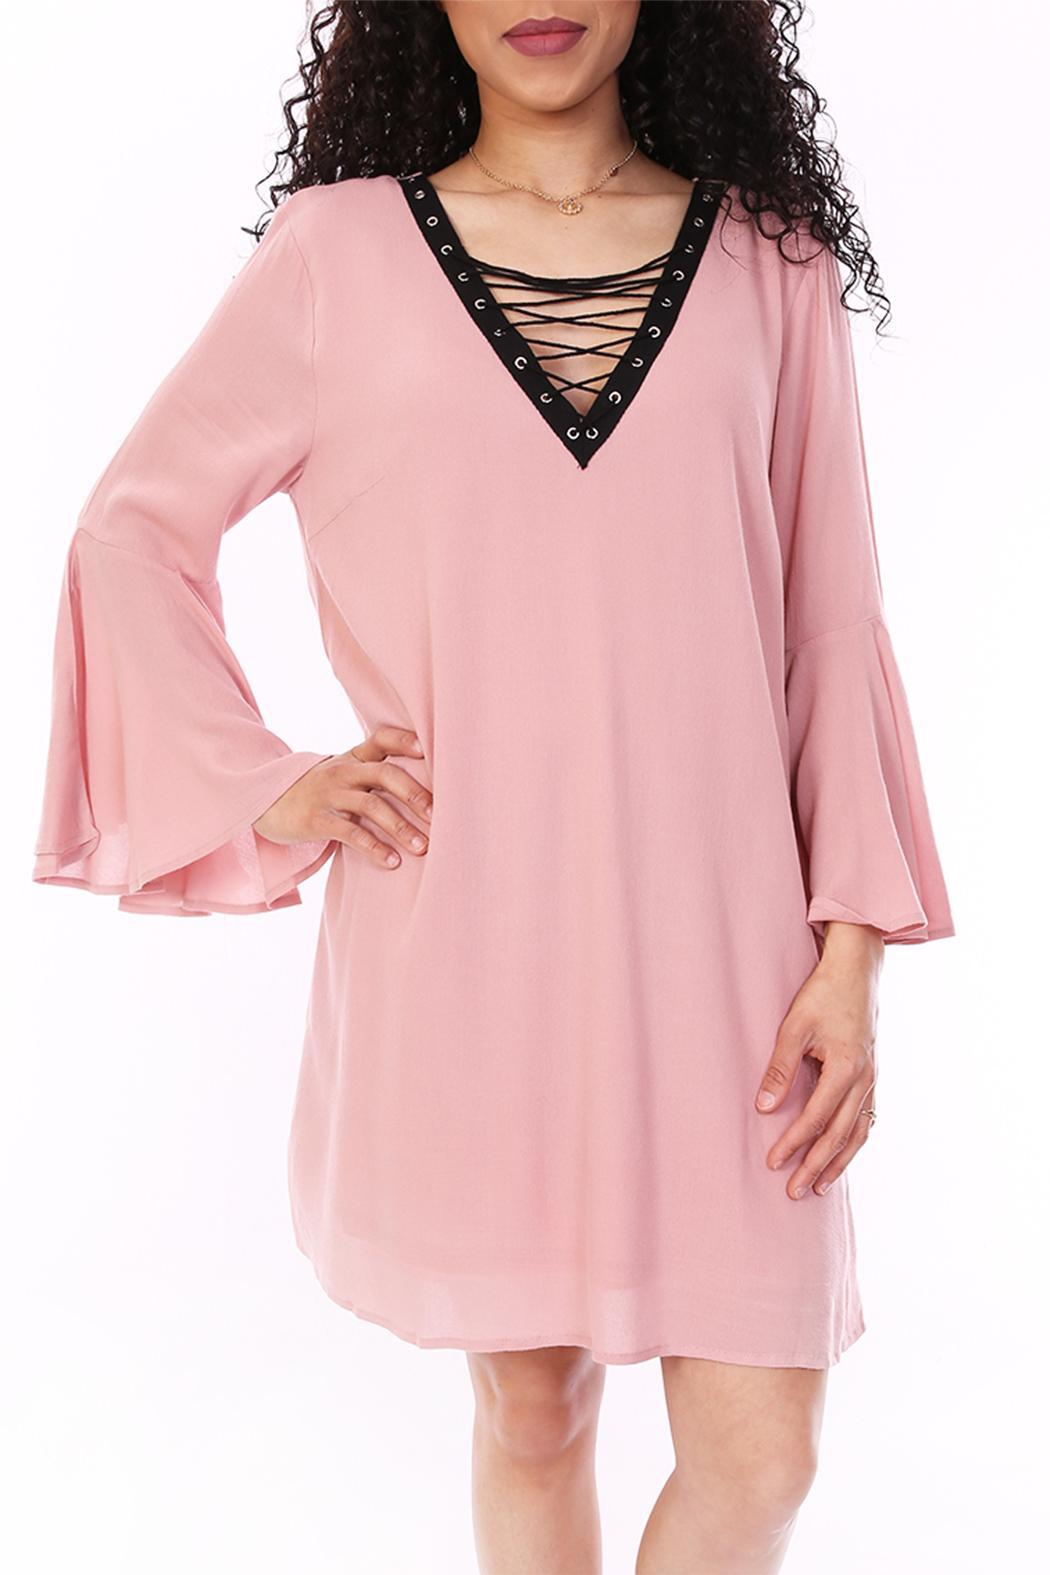 603628318c0 Entro Blush Pink Dress from Dallas by Tangled Society — Shoptiques